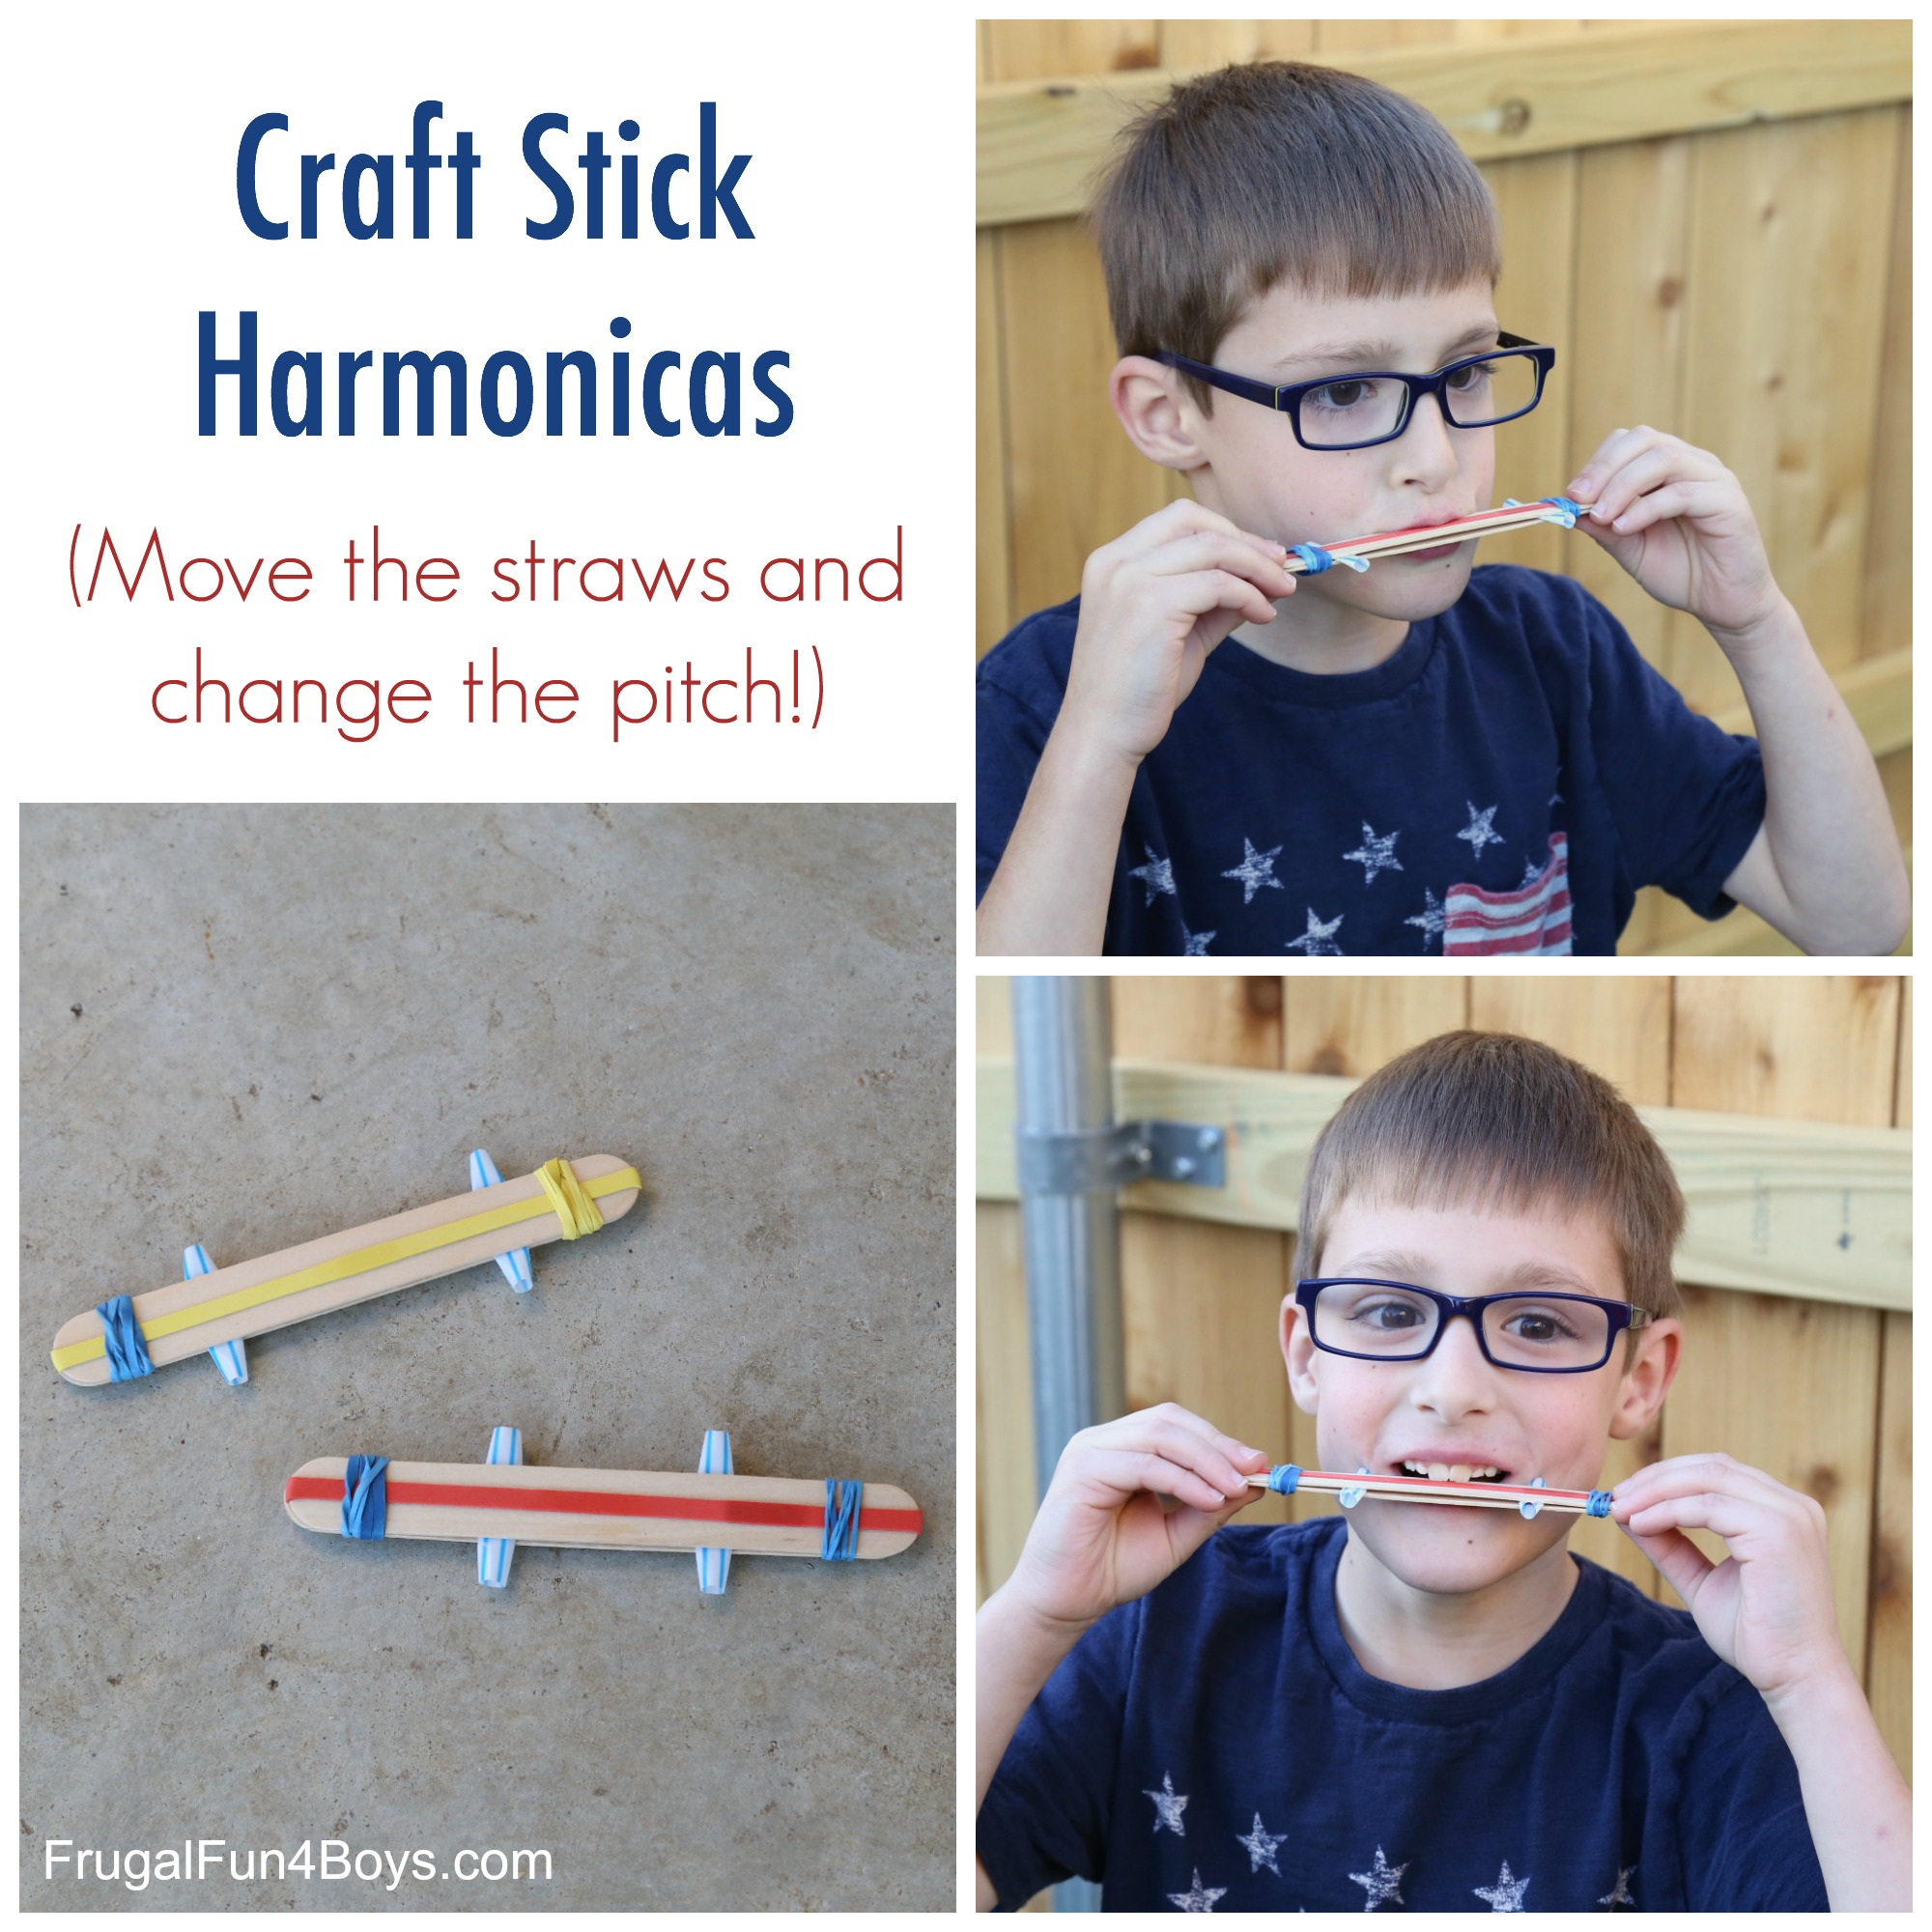 Make a Craft Stick Harmonica